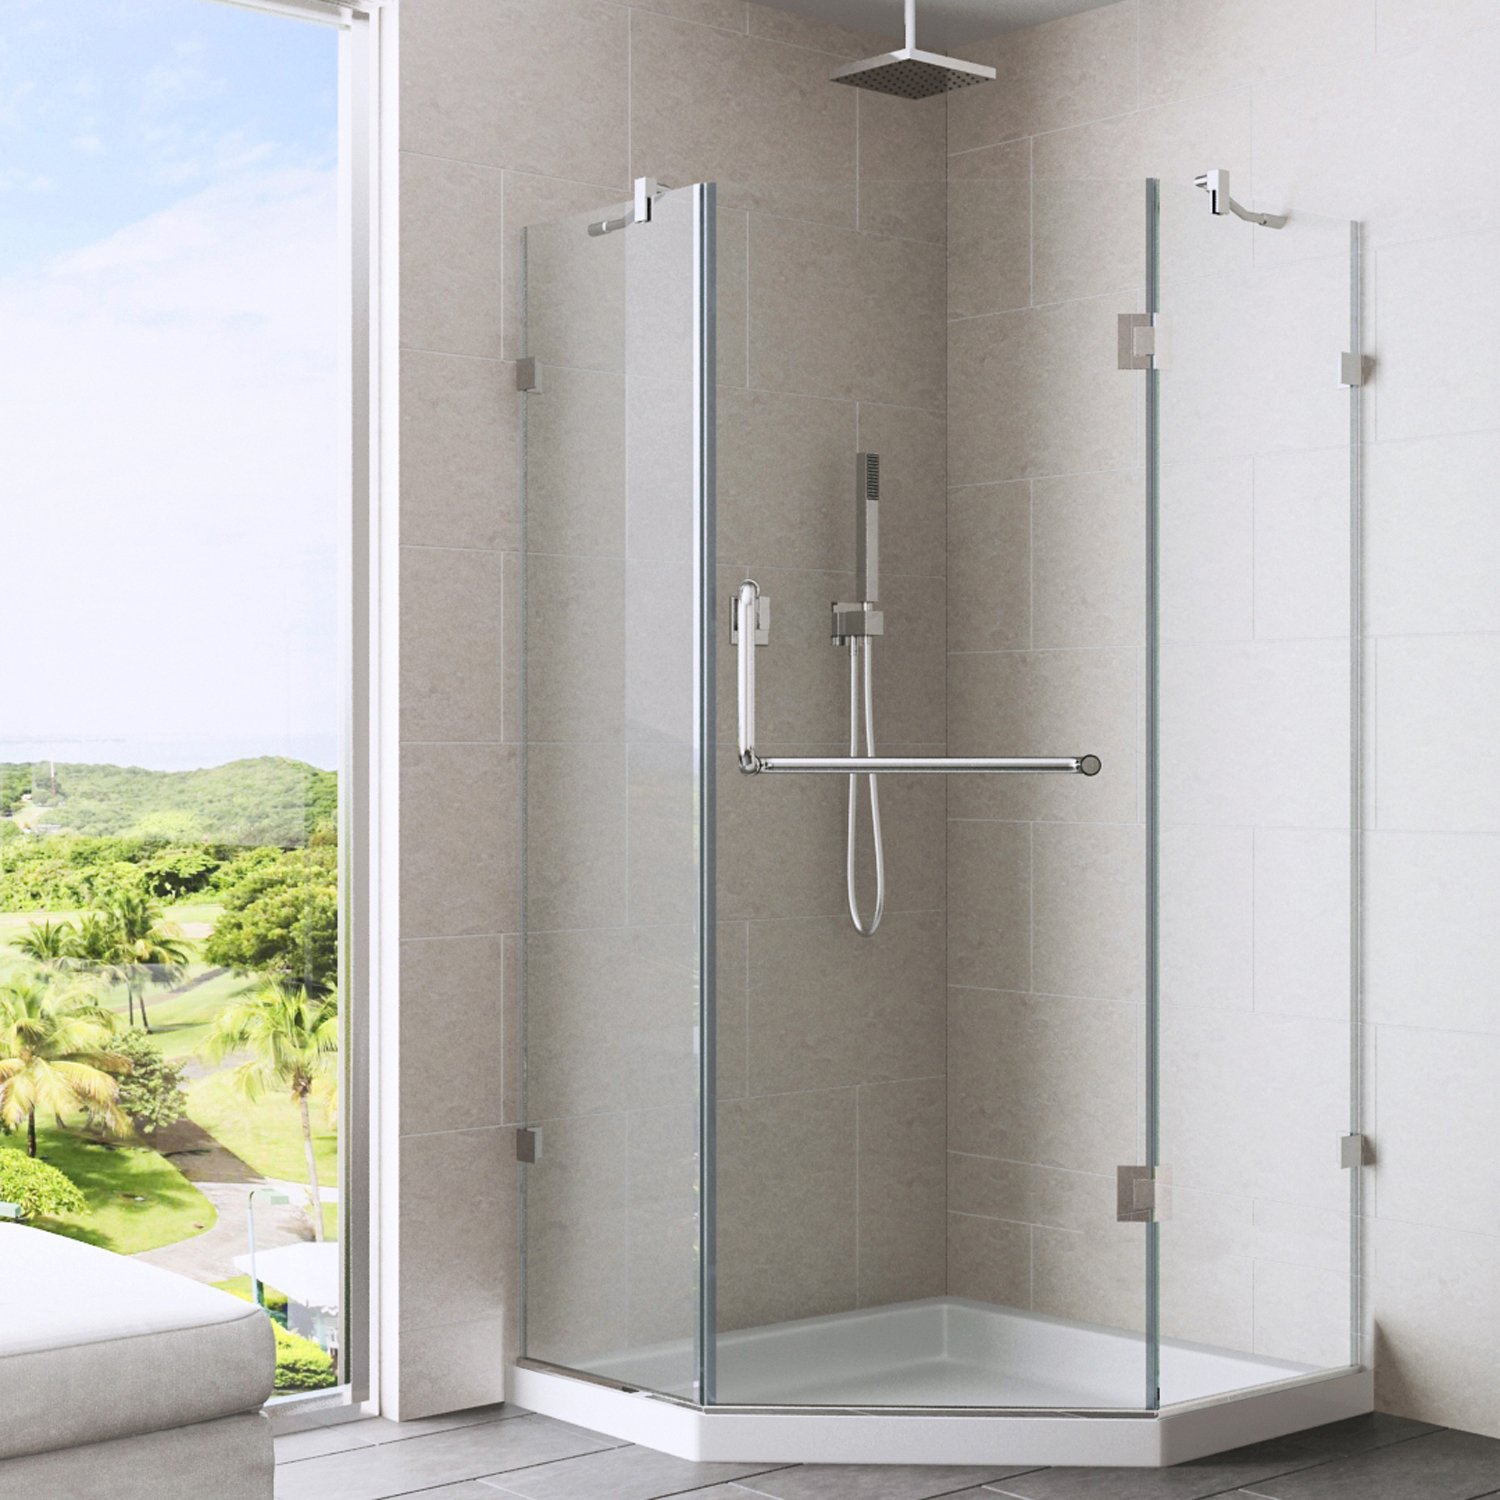 Frameless Neo-Angle Shower Enclosure with .375-in. Clear Glass and Brushed Nickel Hardware (Low-Profile Shower Base Included) - Shower Doors - Amazon.com & VIGO Piedmont 36 x 36-in. Frameless Neo-Angle Shower Enclosure ...